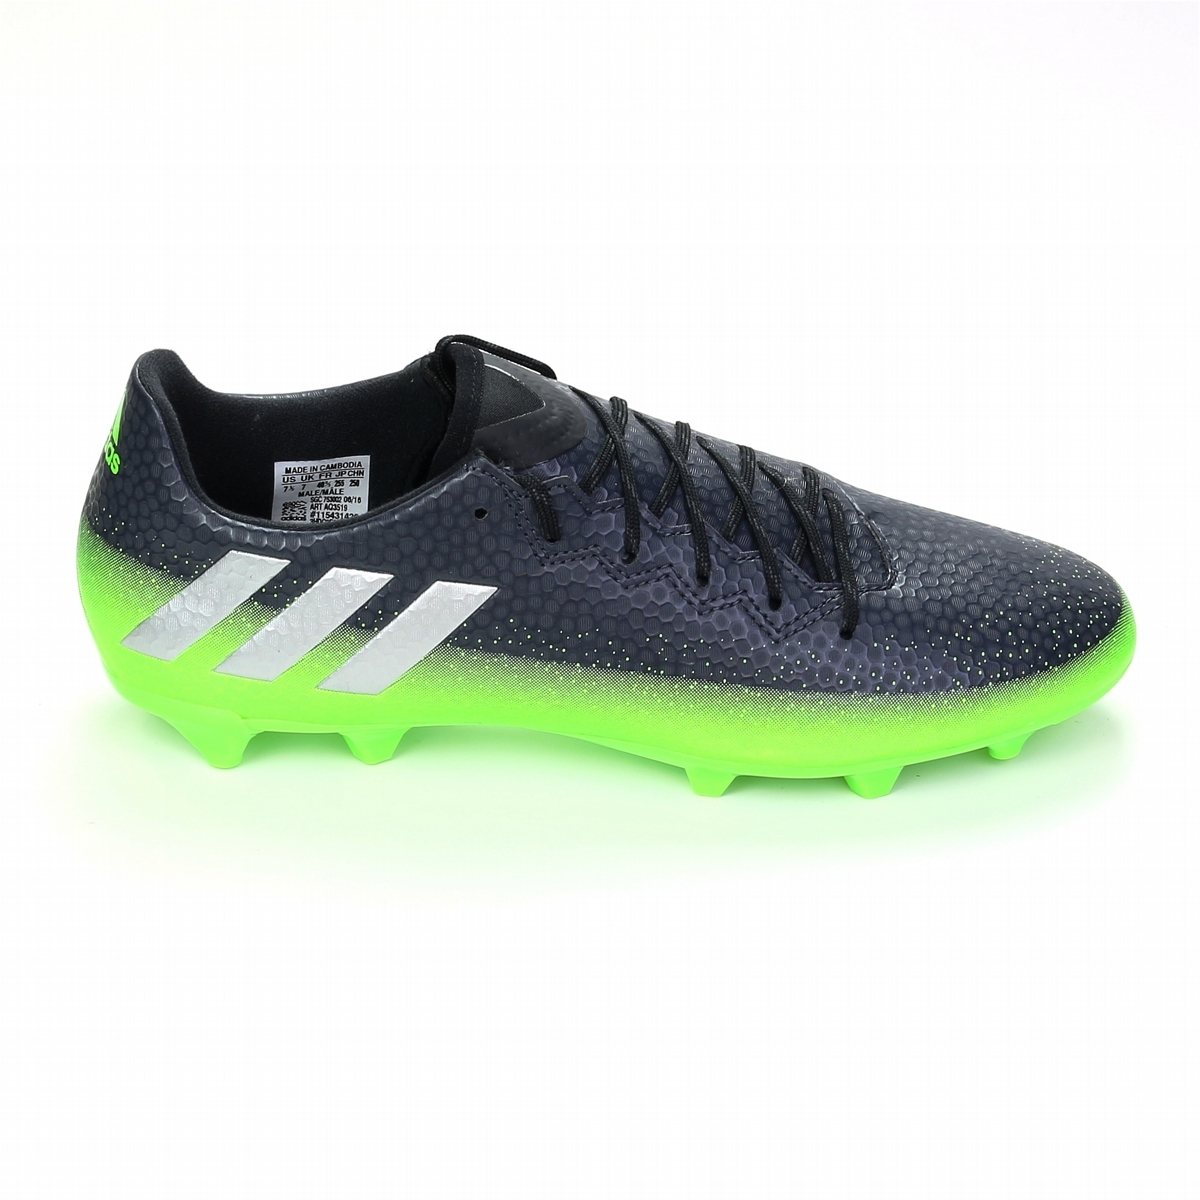 c9d477c4240 Adidas Messi 16.3 FG Soccer Cleats (Dark Grey Silver Metallic Slime ...